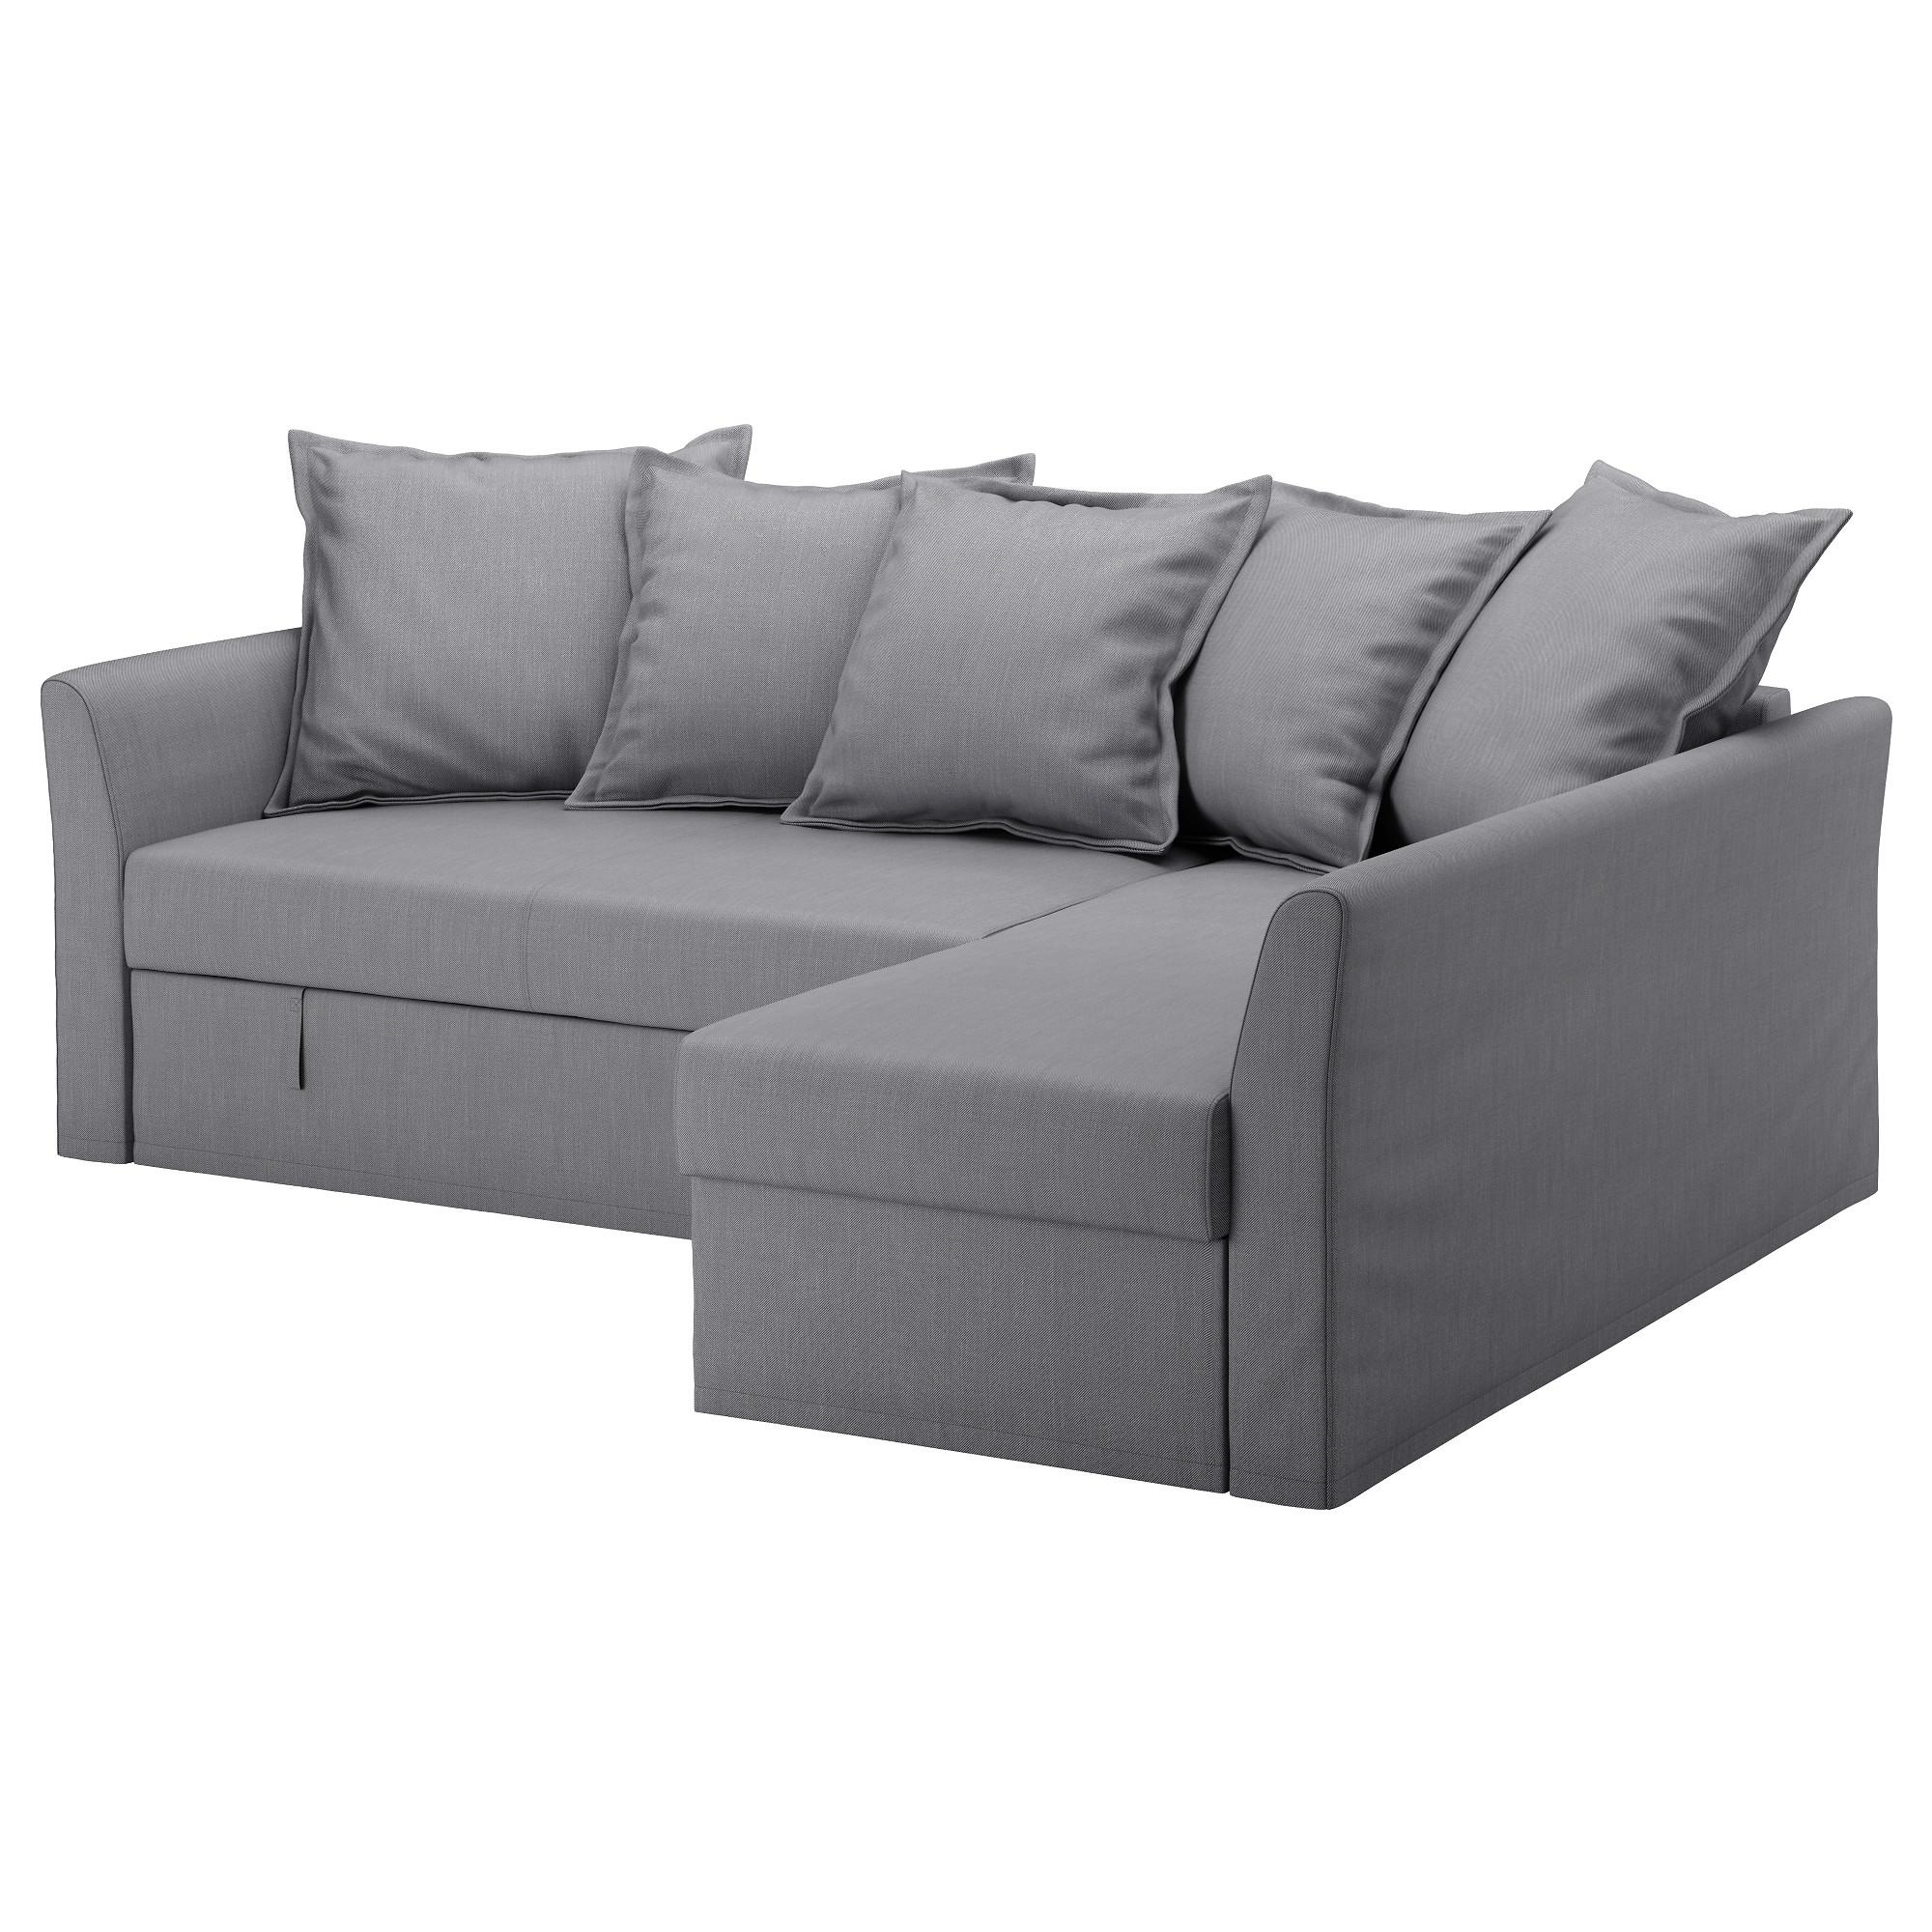 Holmsund Cover For Sleeper Sectional, 3 Seat – Nordvalla Medium With Regard To Ikea Storage Sofa Bed (View 14 of 20)